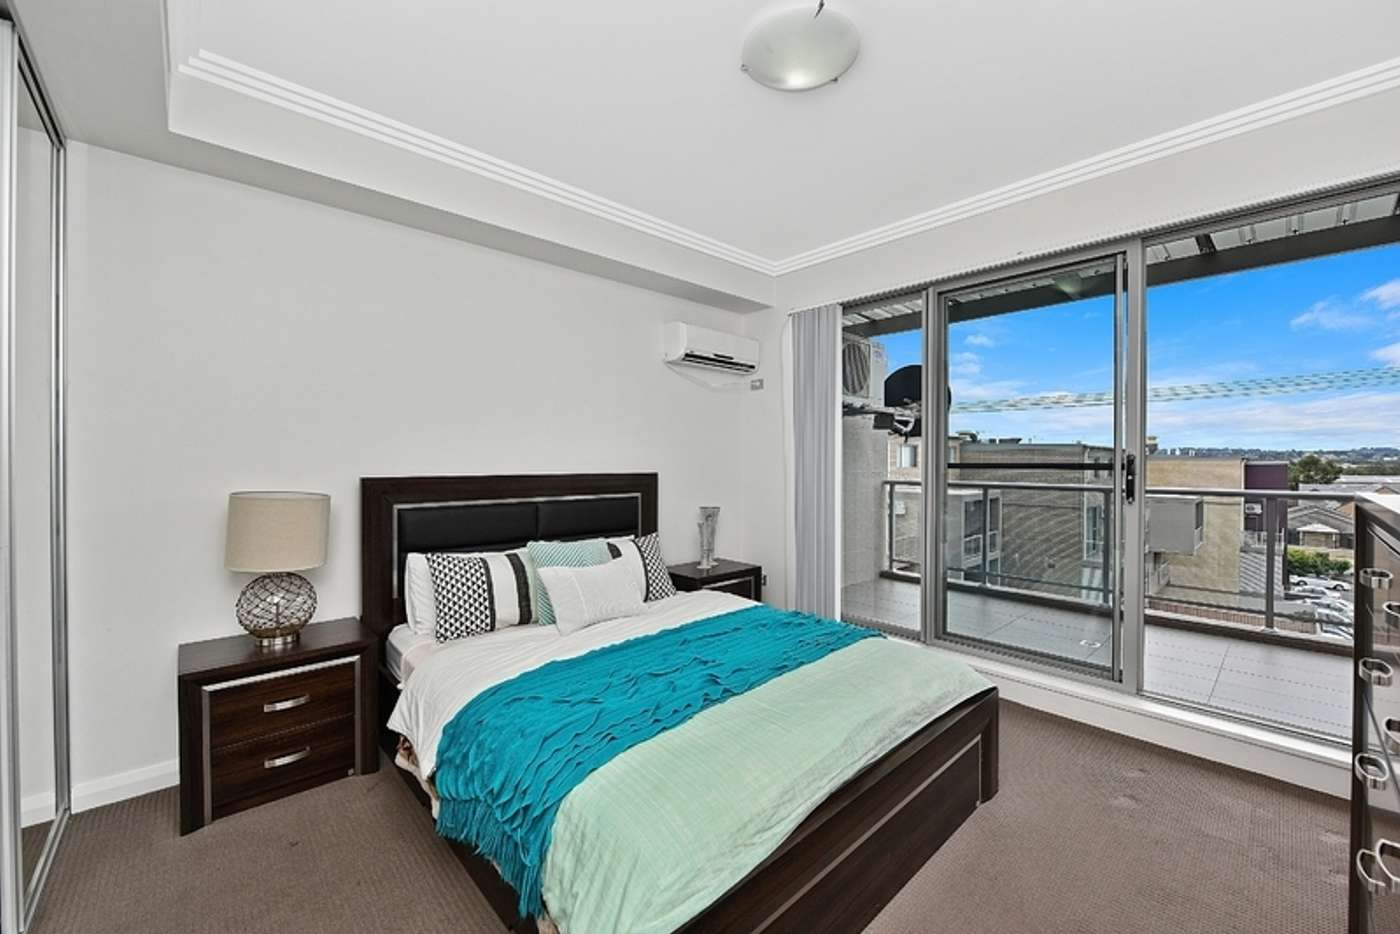 Sixth view of Homely apartment listing, 61/79 Beaconsfield Street, Silverwater NSW 2128